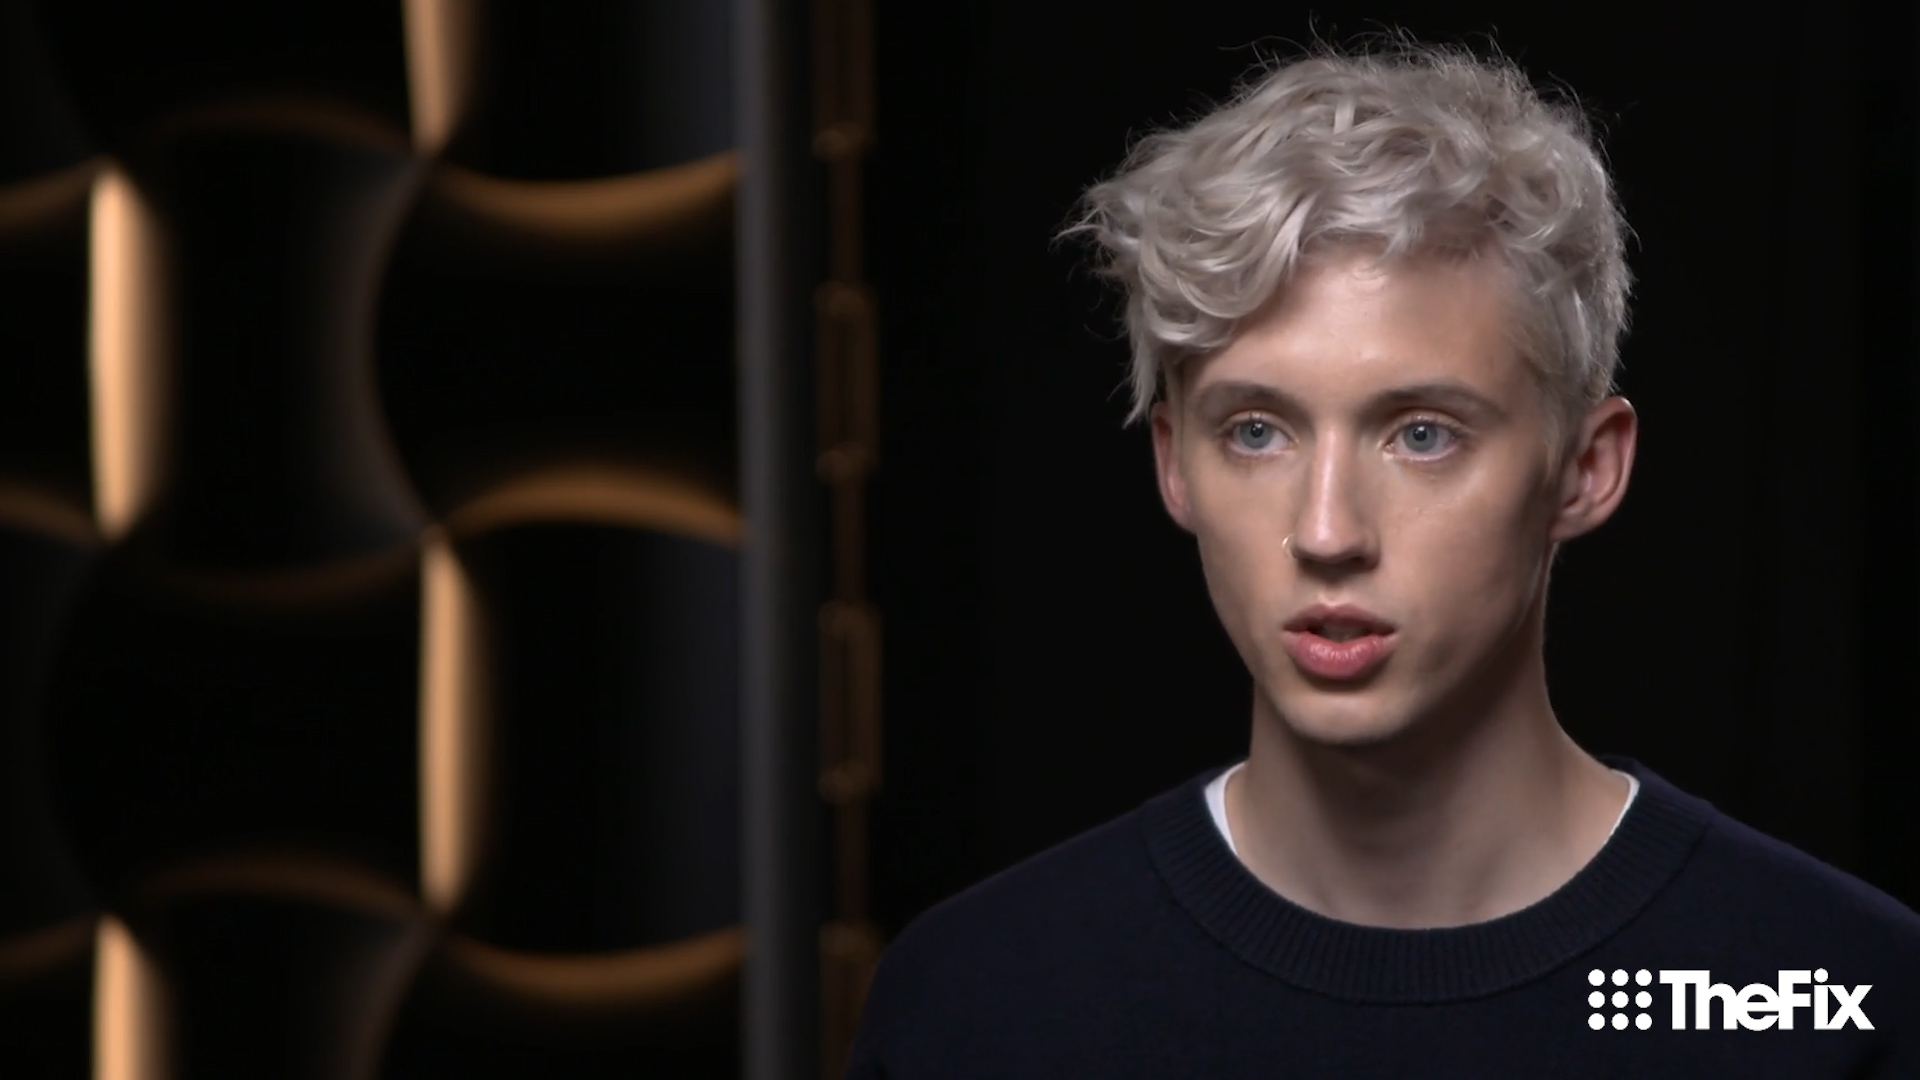 Singer Troye Sivan chats to The Fix